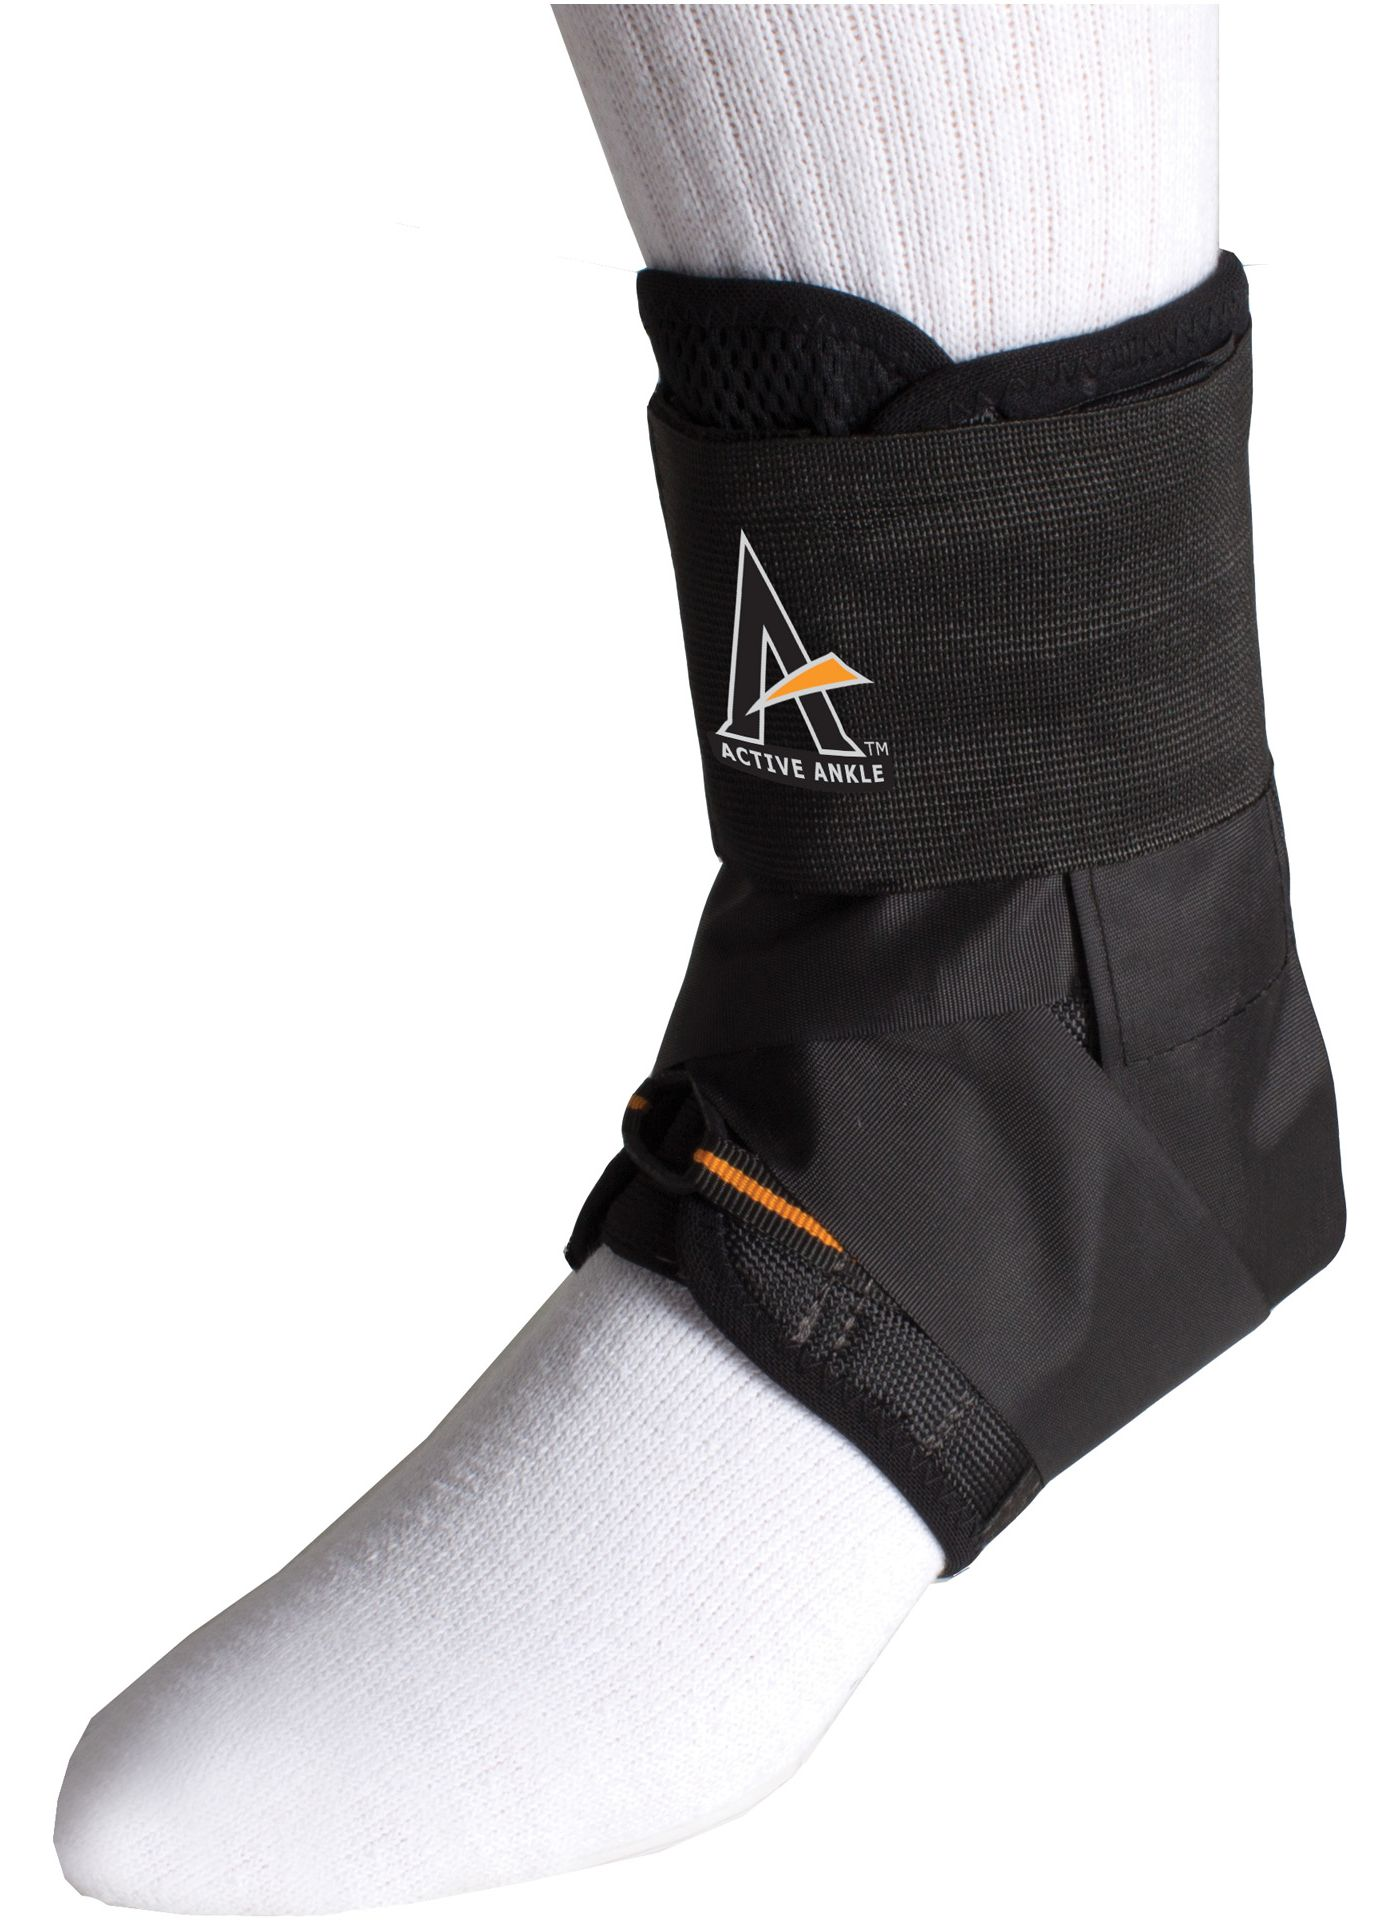 Active Ankle AS1 Pro Lace-Up Ankle Brace with Straps